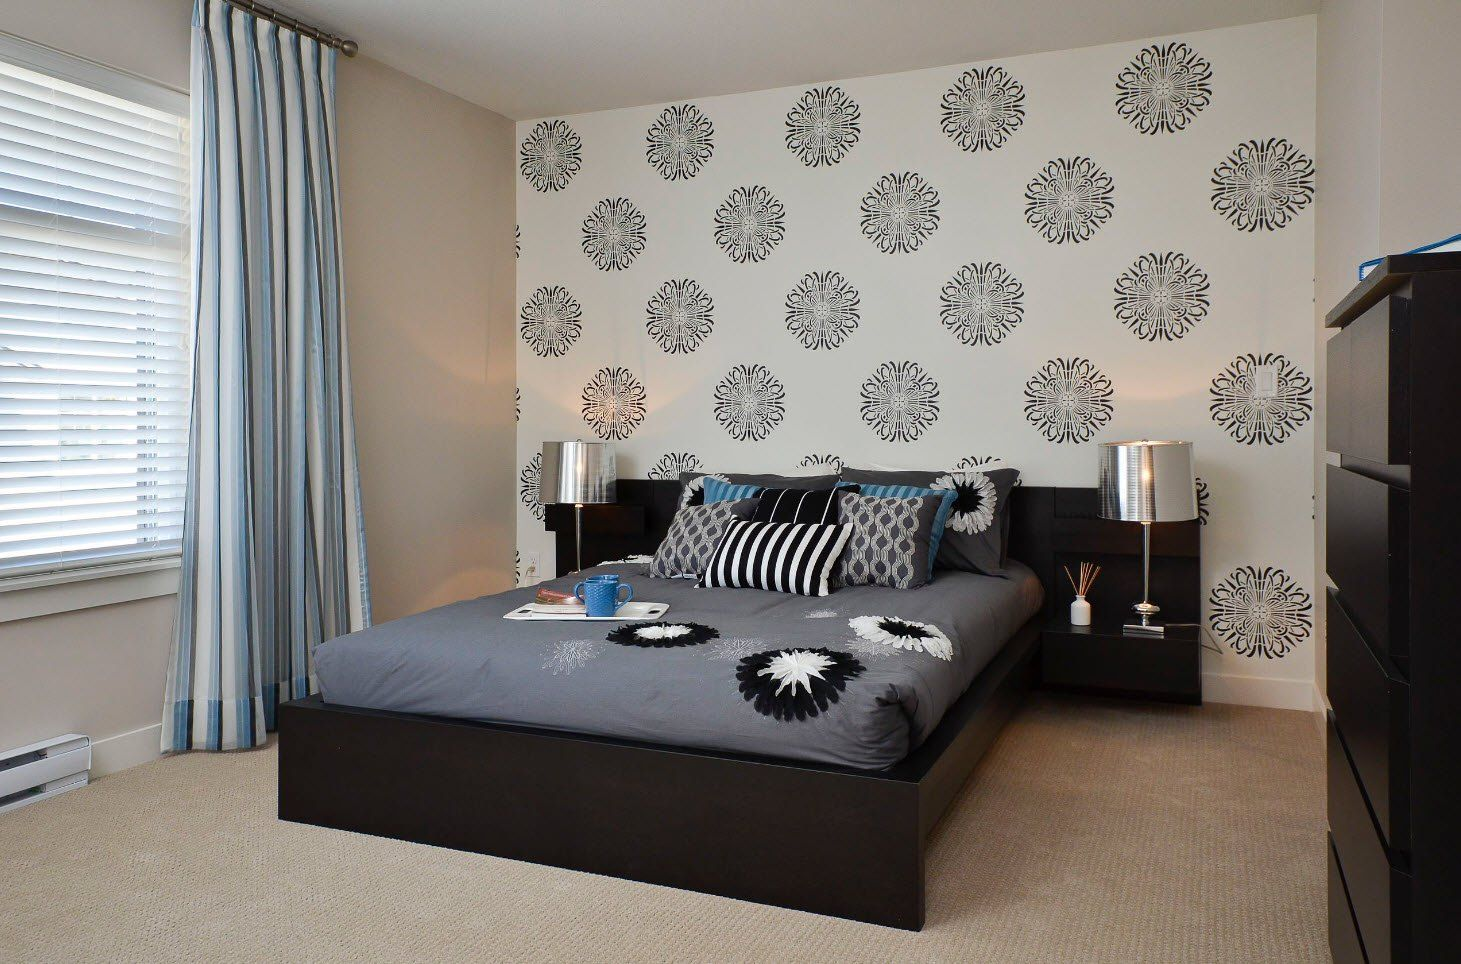 Black and White Wallpaper: Ageless Classics in any Interior. Simple design of the bedroom with dark bed and print on the accent wall